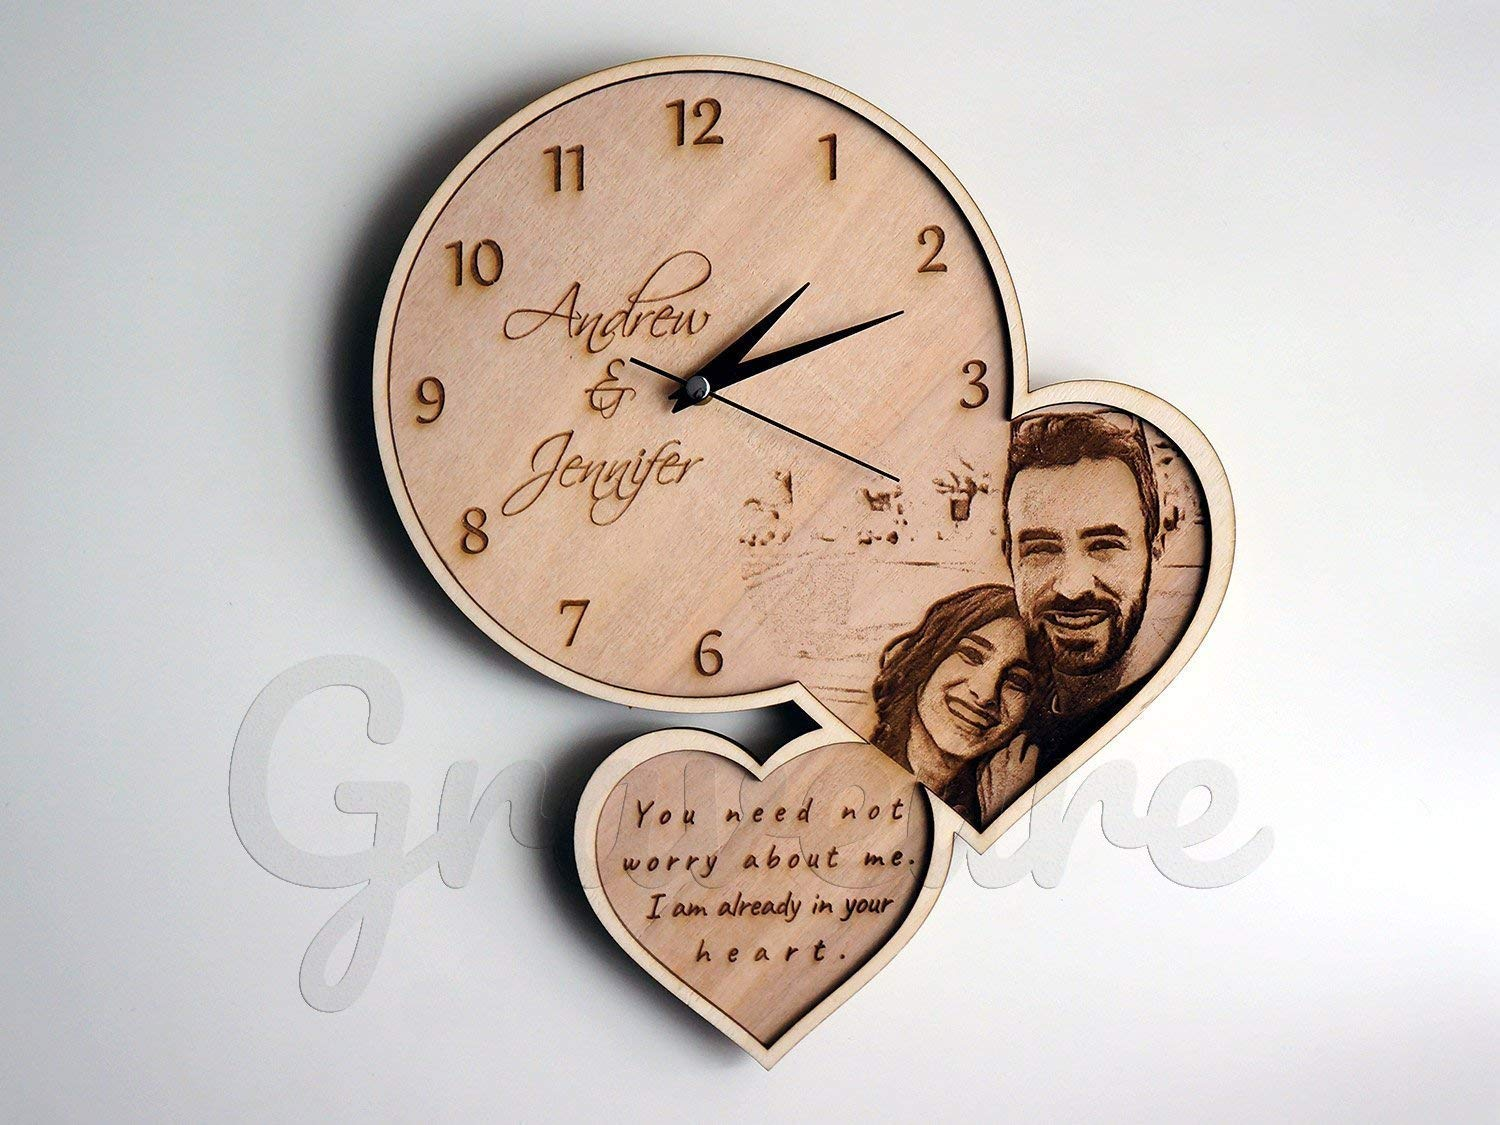 Wood Burned Picture, Your Custom Photo on Wood, Rustic Home Decor, Country Wall Art, Wooden Wall Clock, Customized Wall Clock